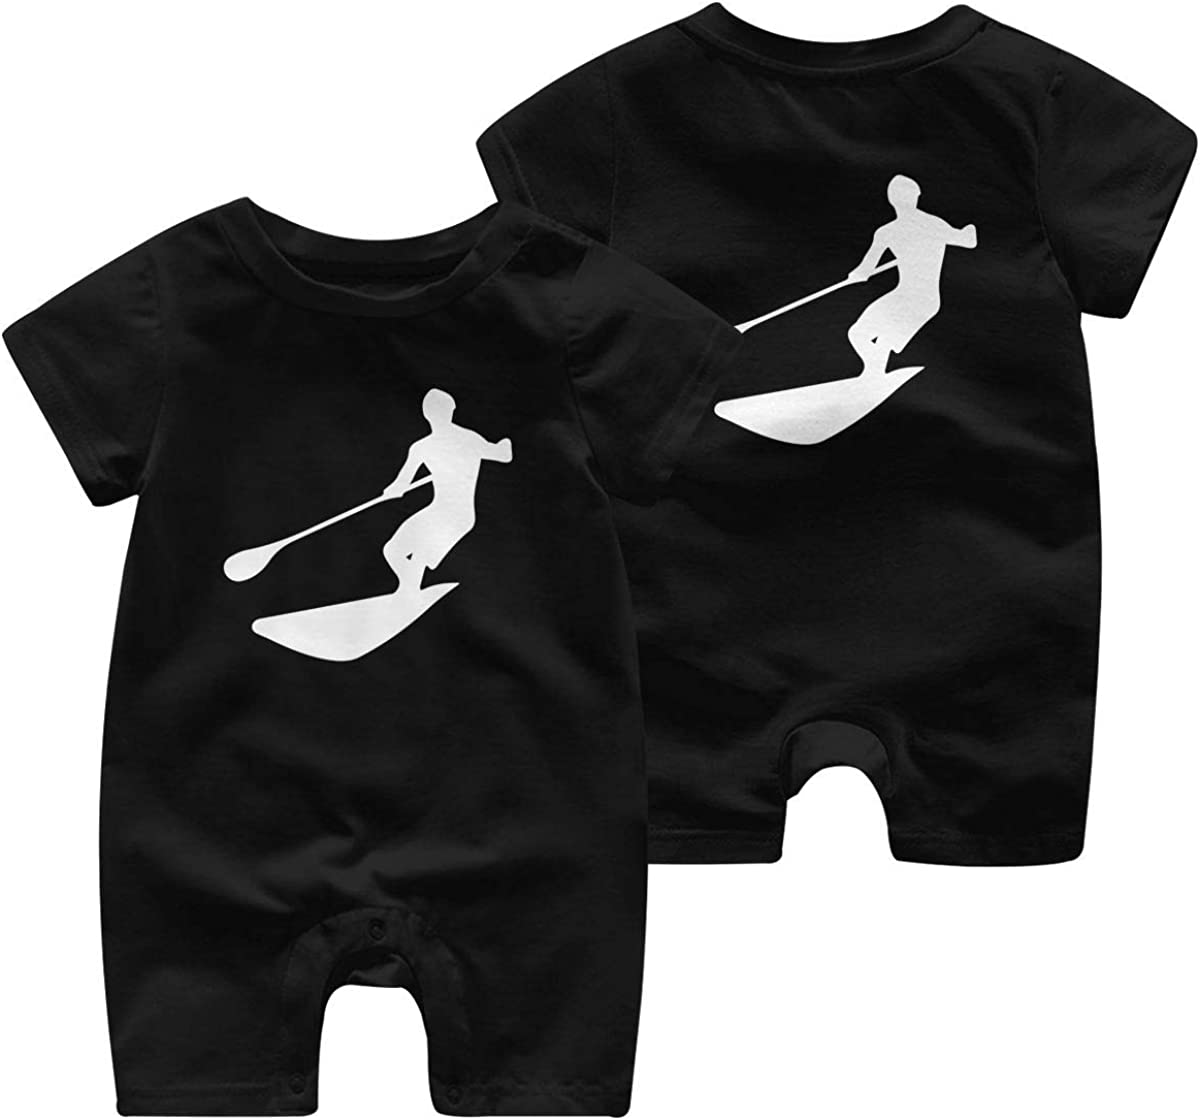 AYL8pf Paddleboard Sports Toddler Baby Boy Romper Outfits One Piece Baby Clothes